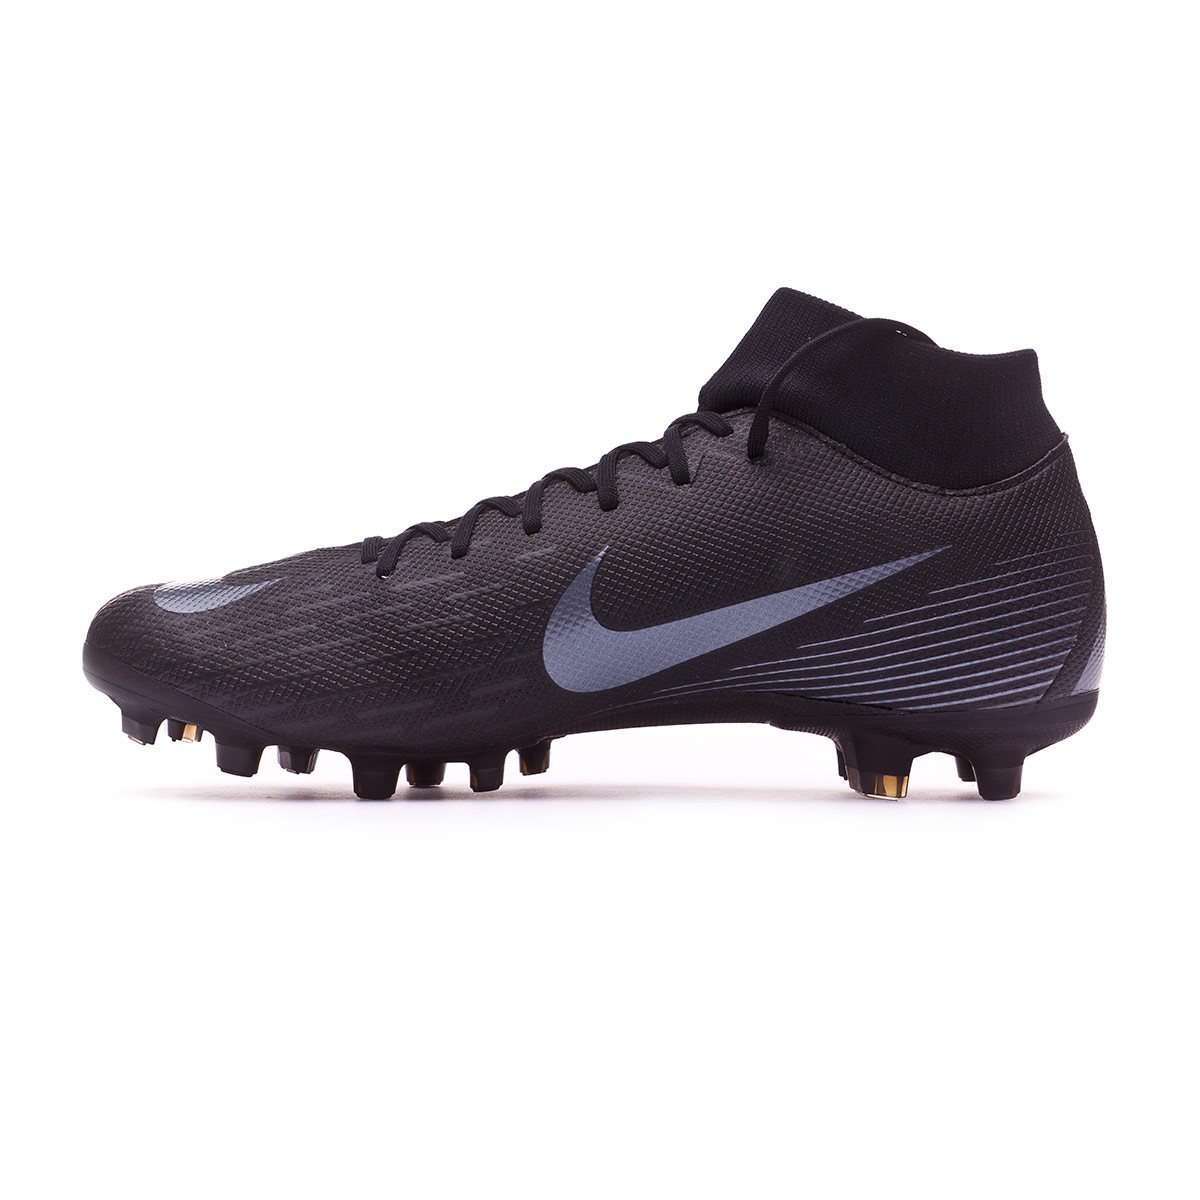 5f28aa15d Football Boots Nike Mercurial Superfly VI Academy MG Black - Football store  Fútbol Emotion